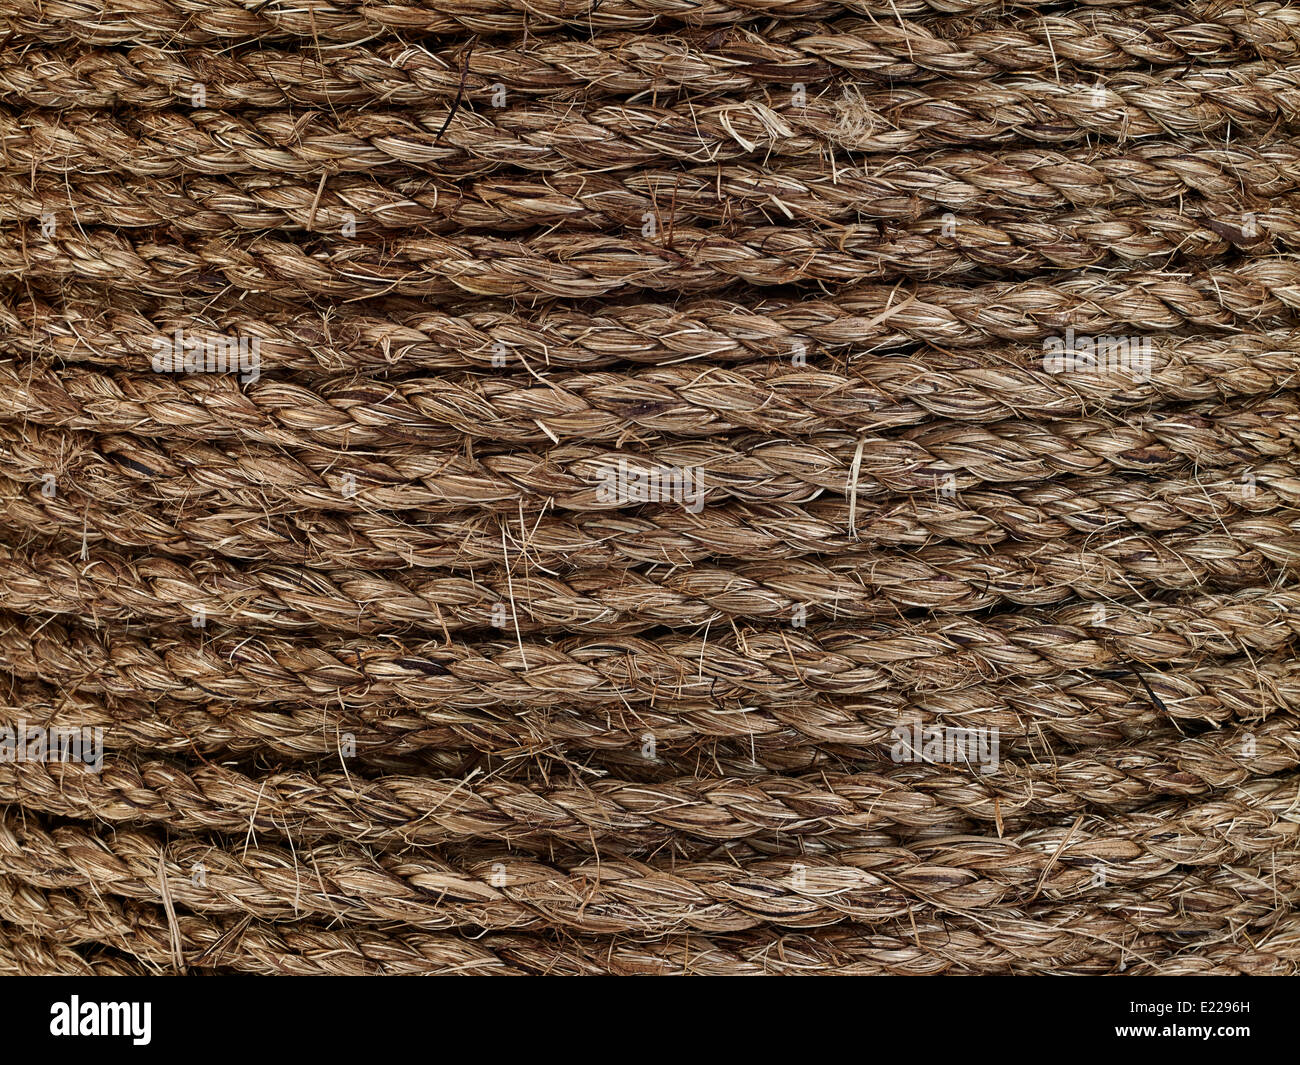 Coiled Rope Detail - Stock Image